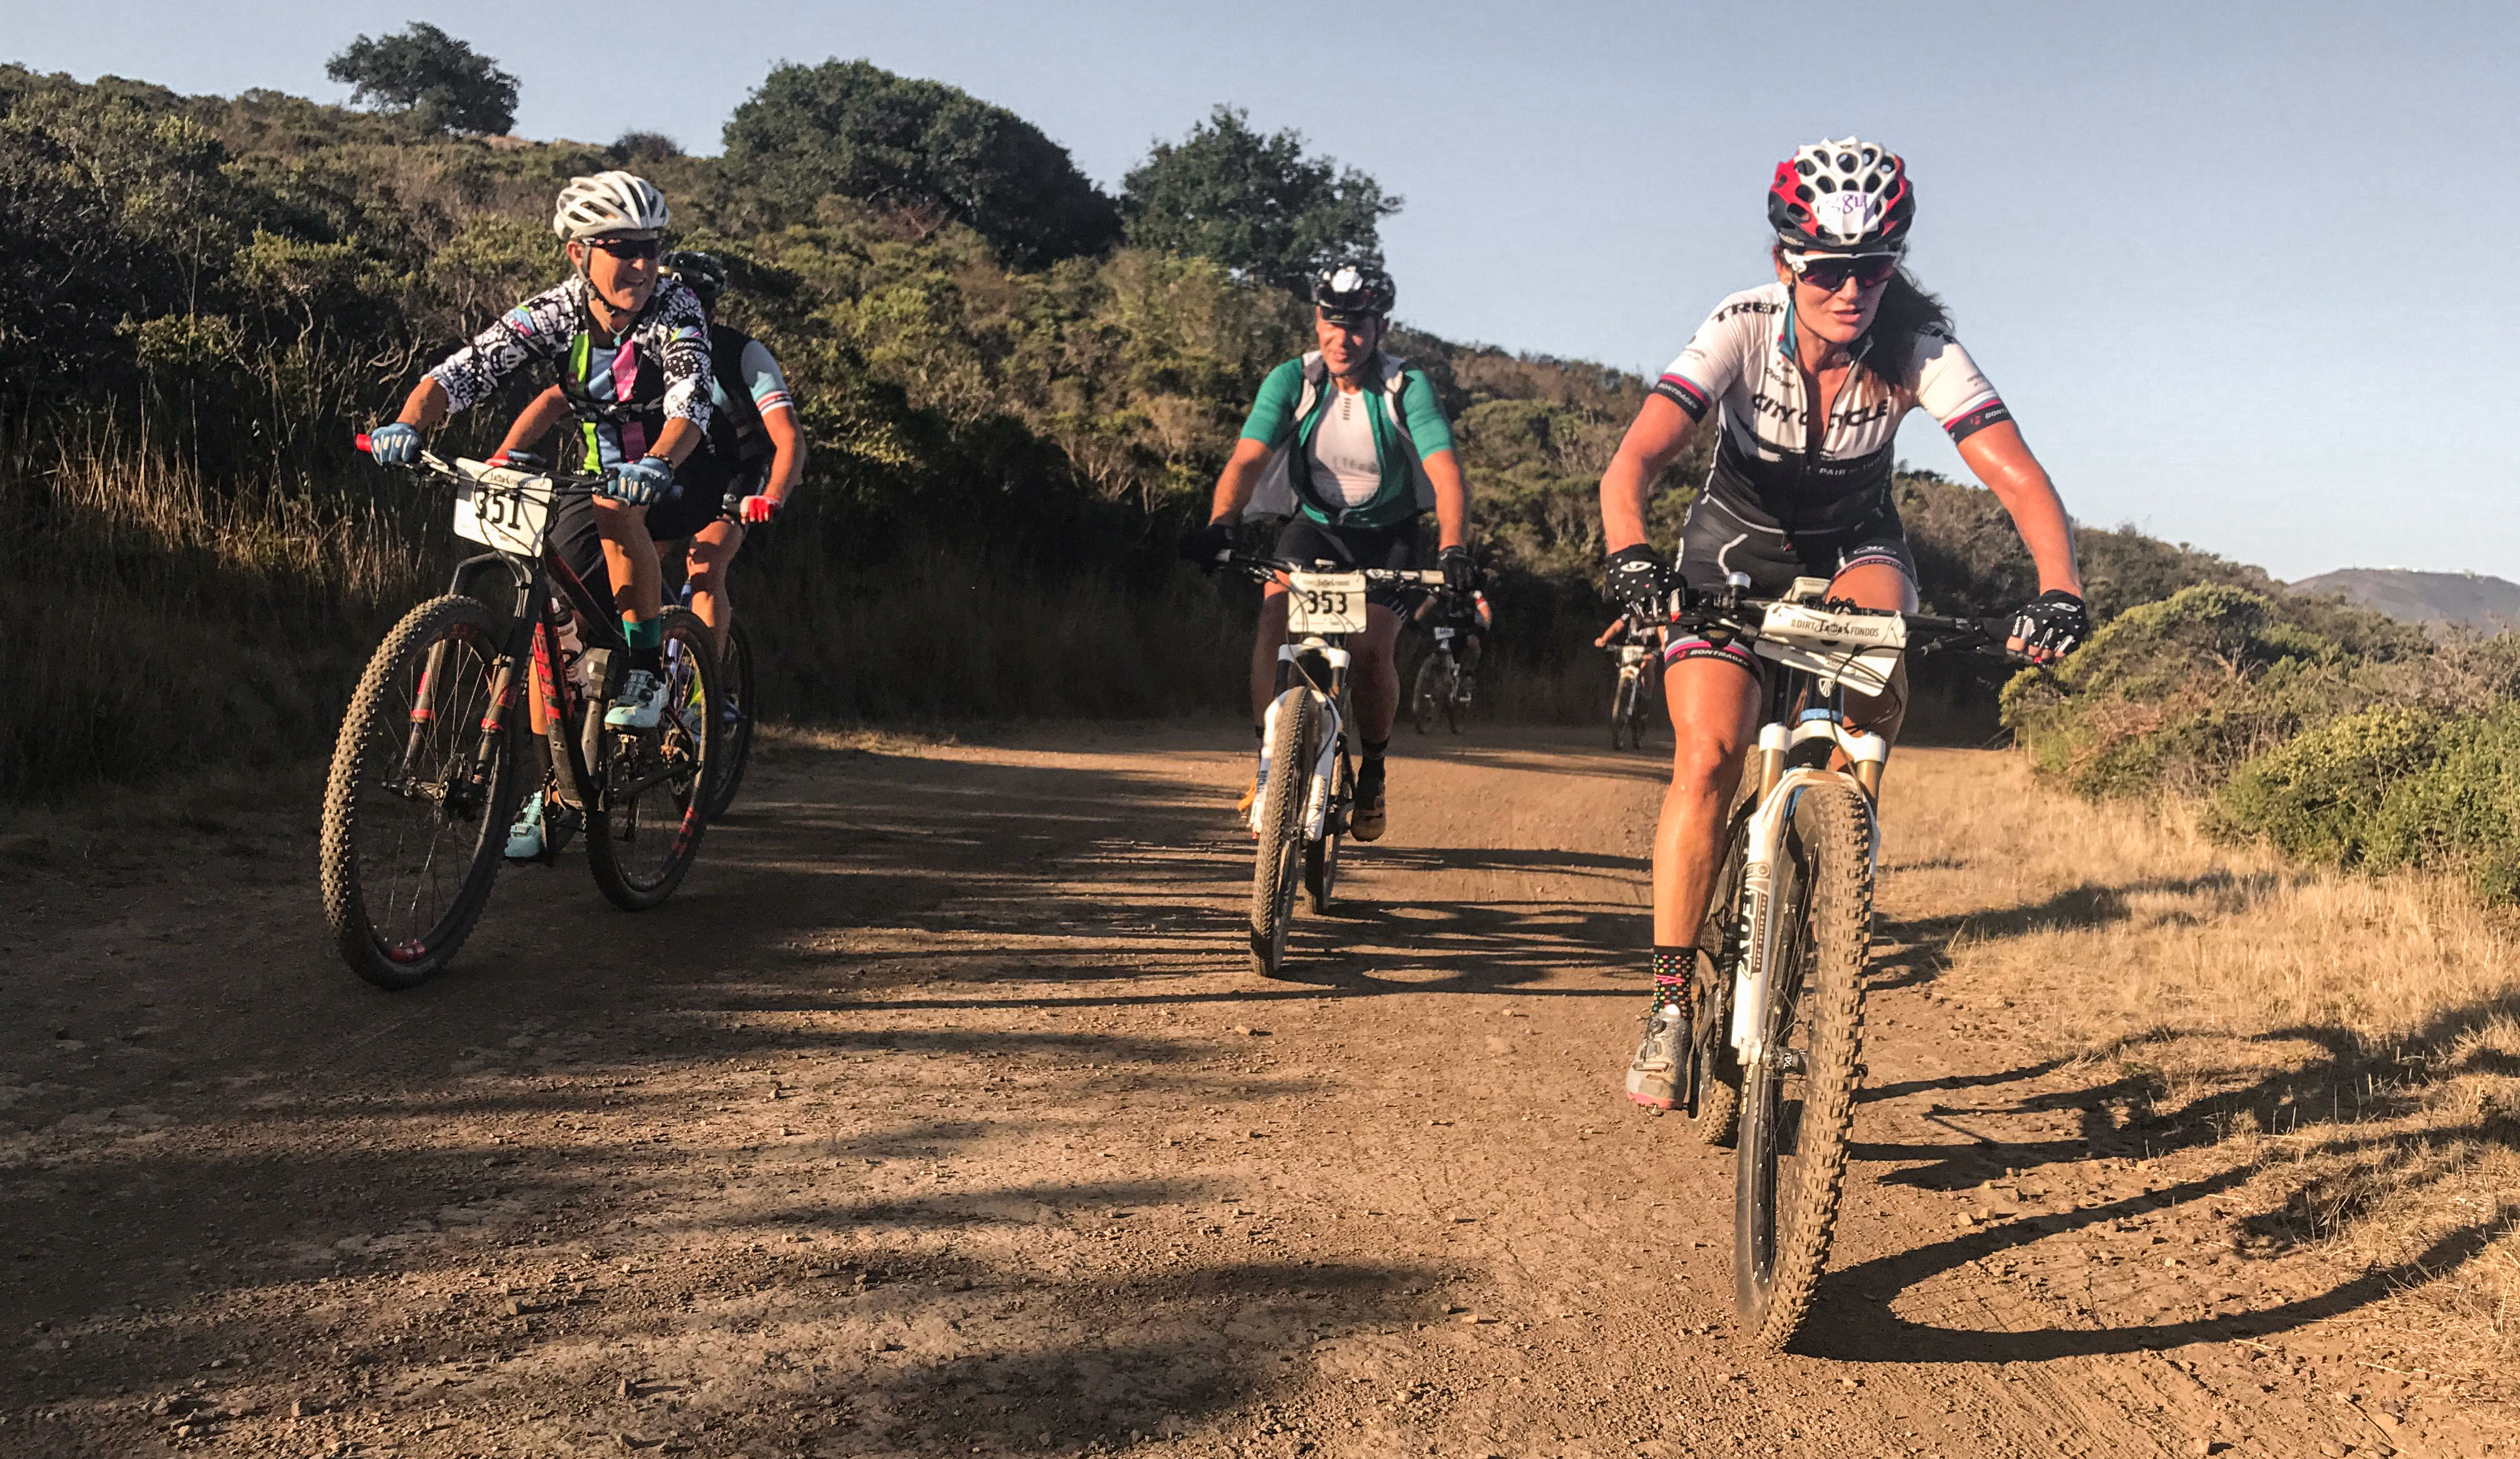 A big group of mountain bikers taking riding on a dirt trail at Dirt Fndo event